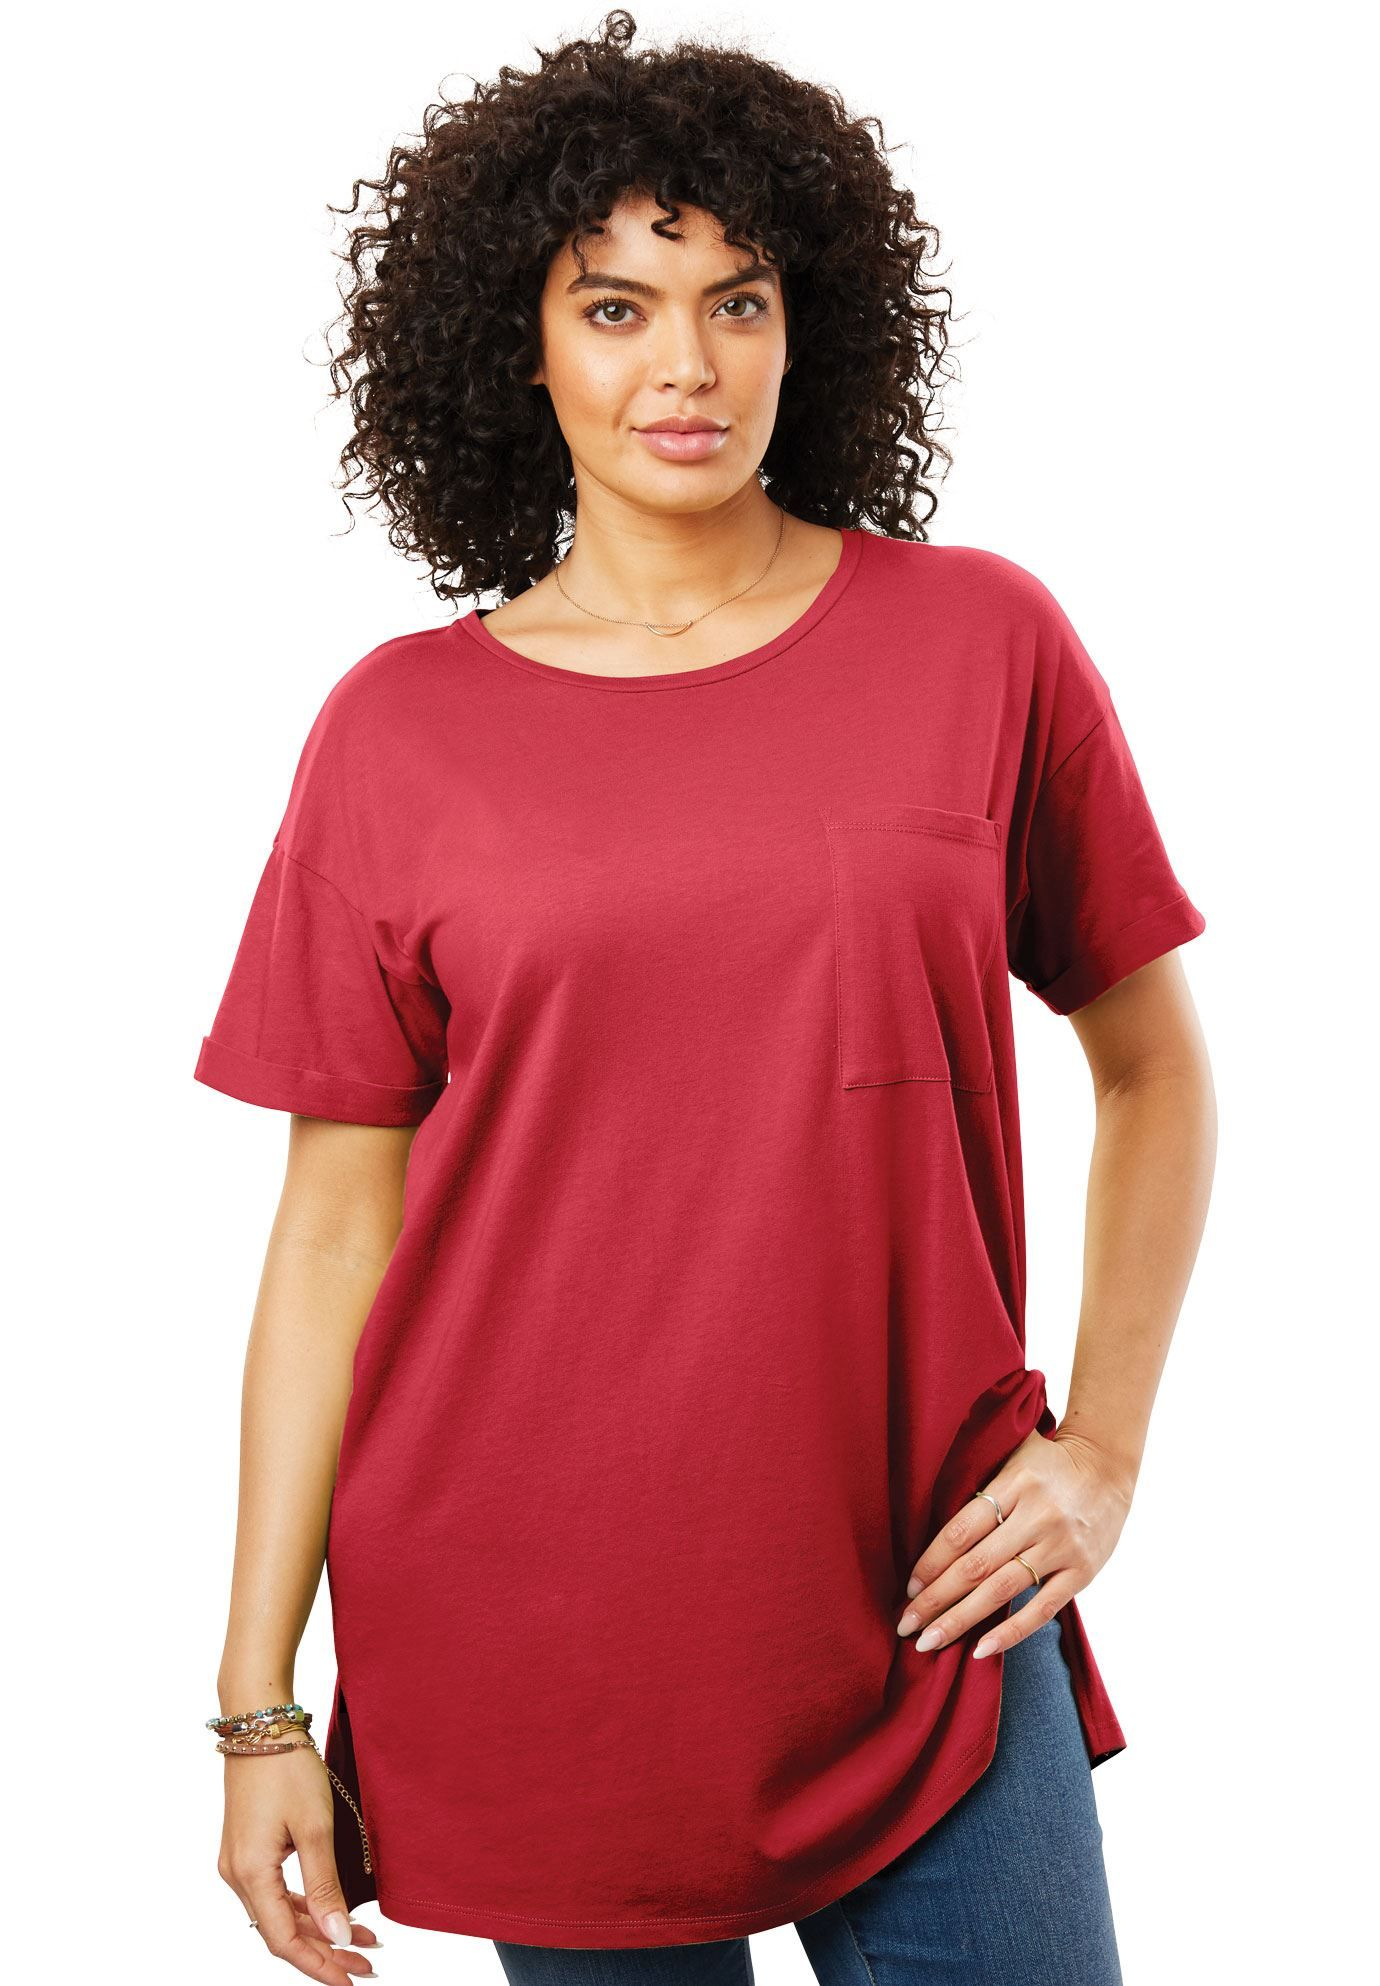 564851bab Longer Length Crewneck Tee - Women's Plus Size Clothing | Products